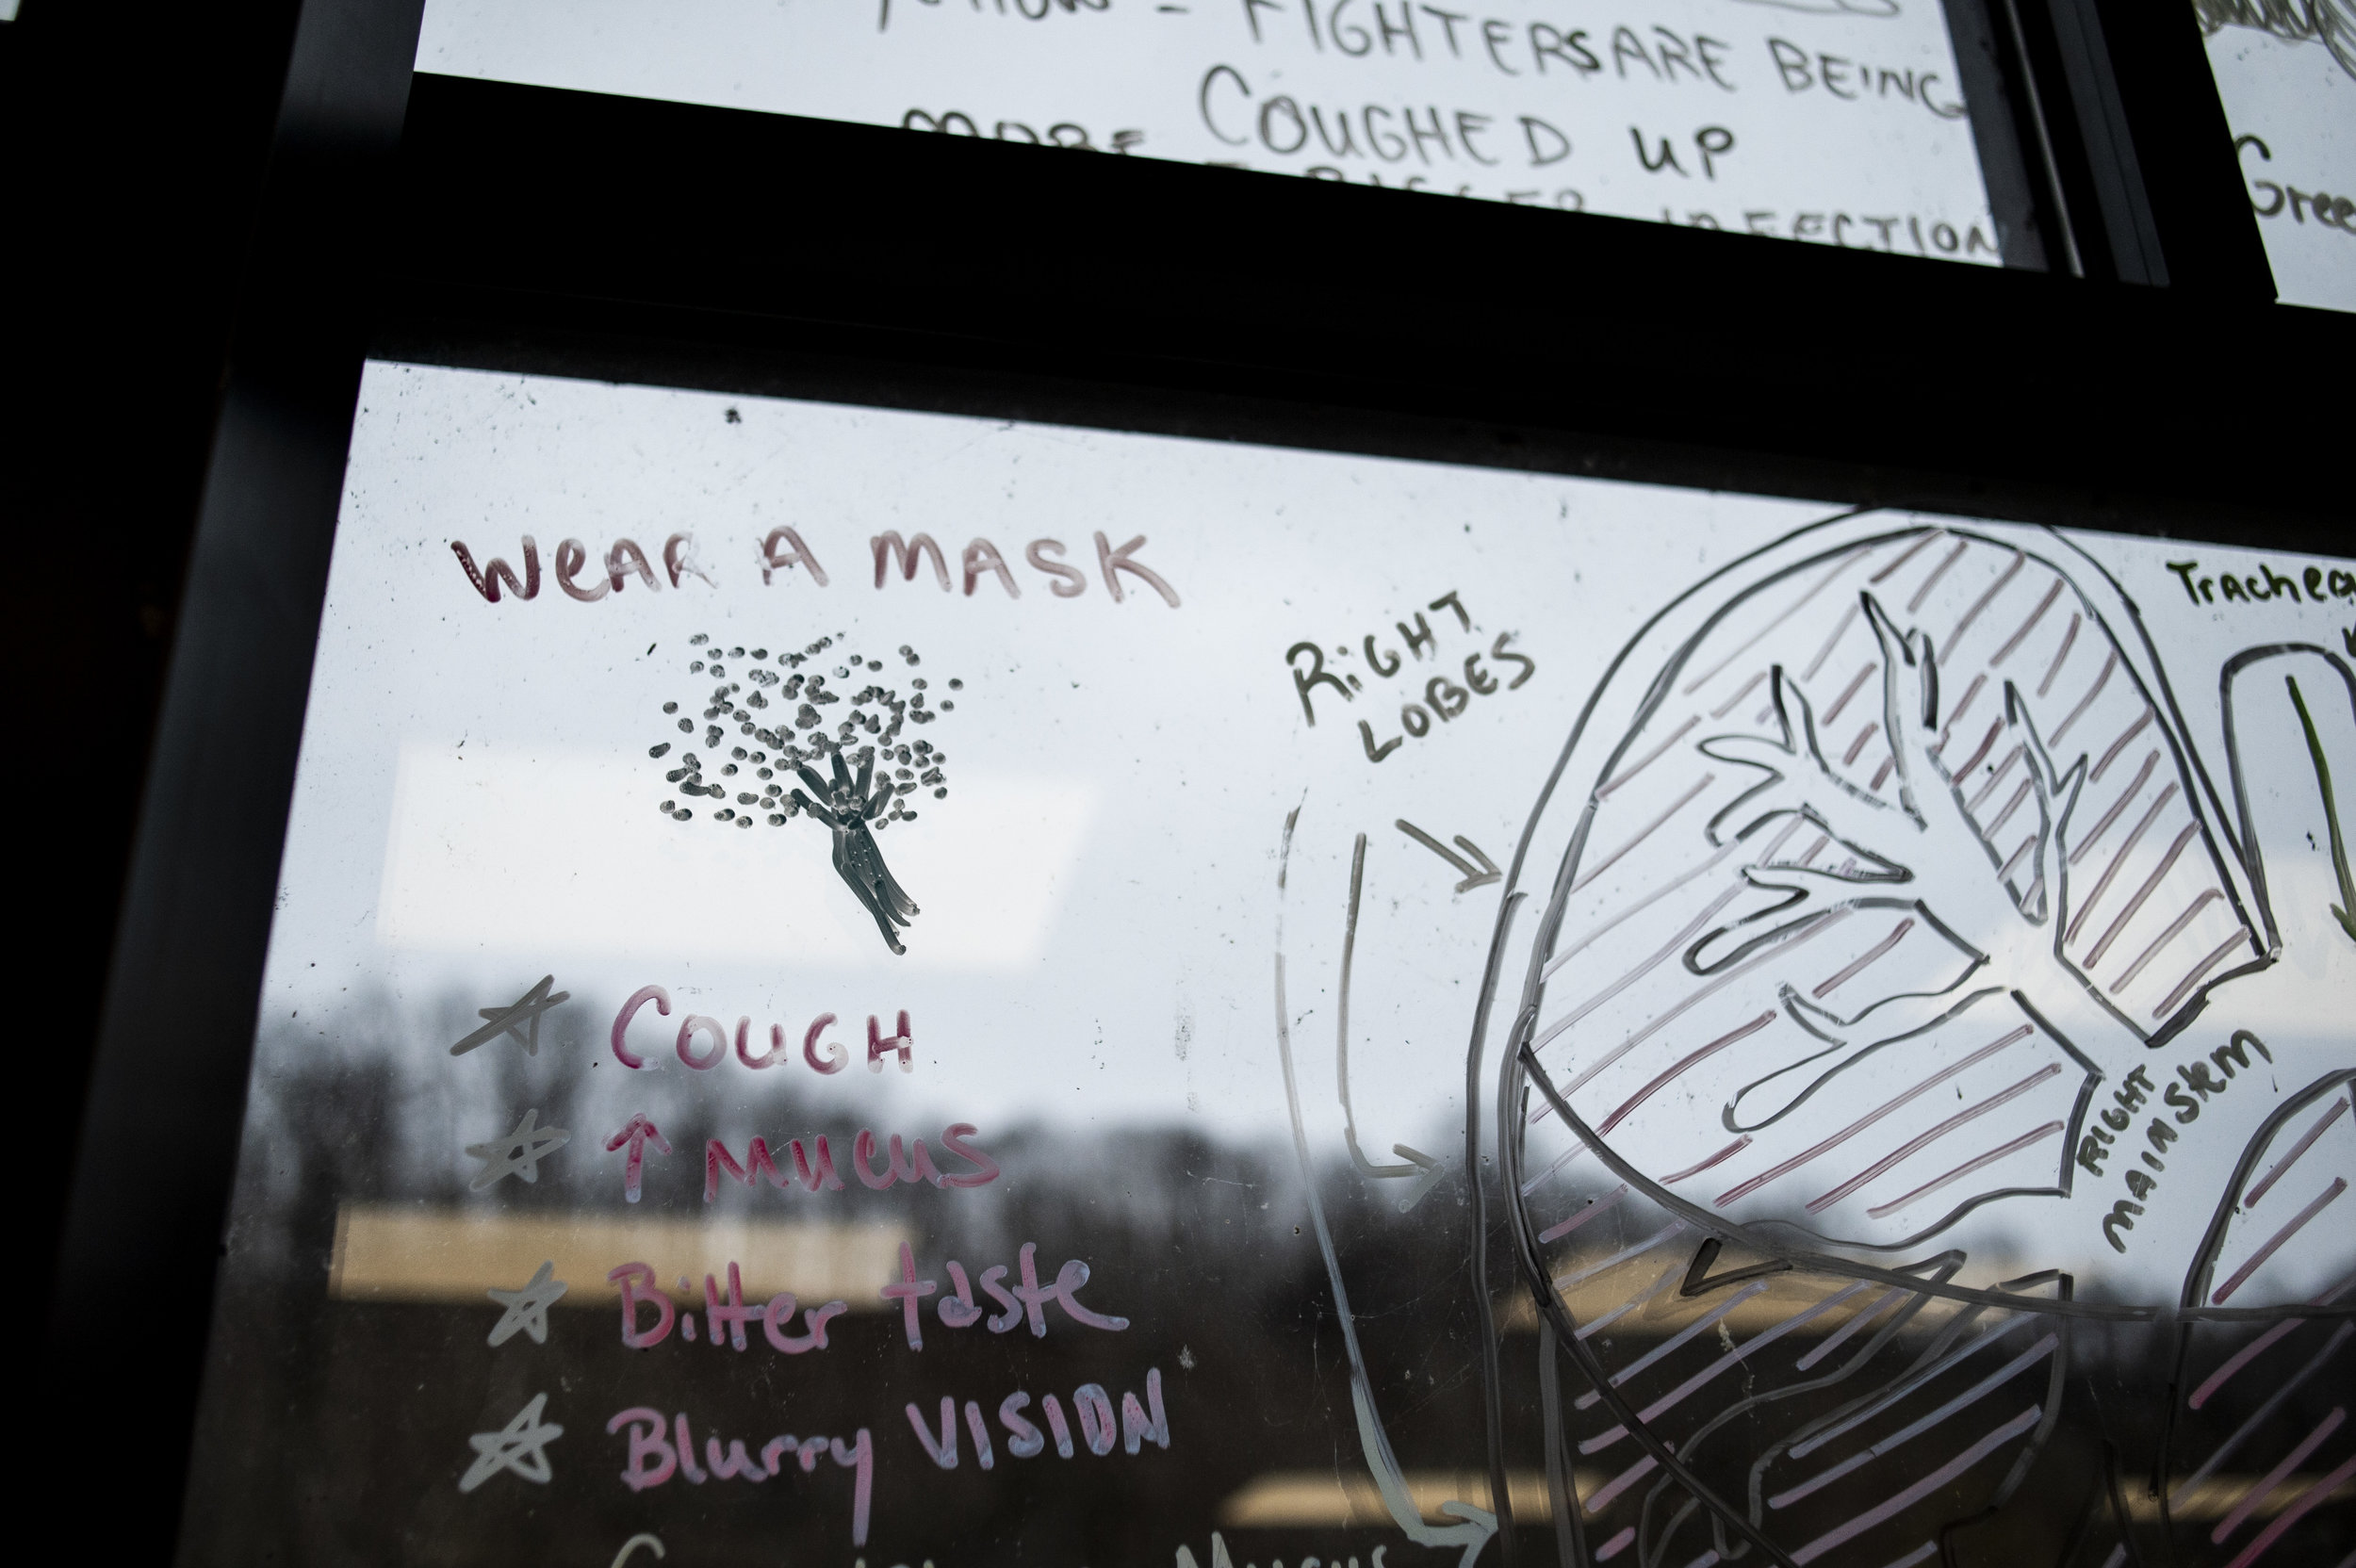 Drawings and information about lung health and Black Lung Disease cover the windows of the New Beginnings Pulmonary Rehab Clinic in South Williamson, Kentucky.